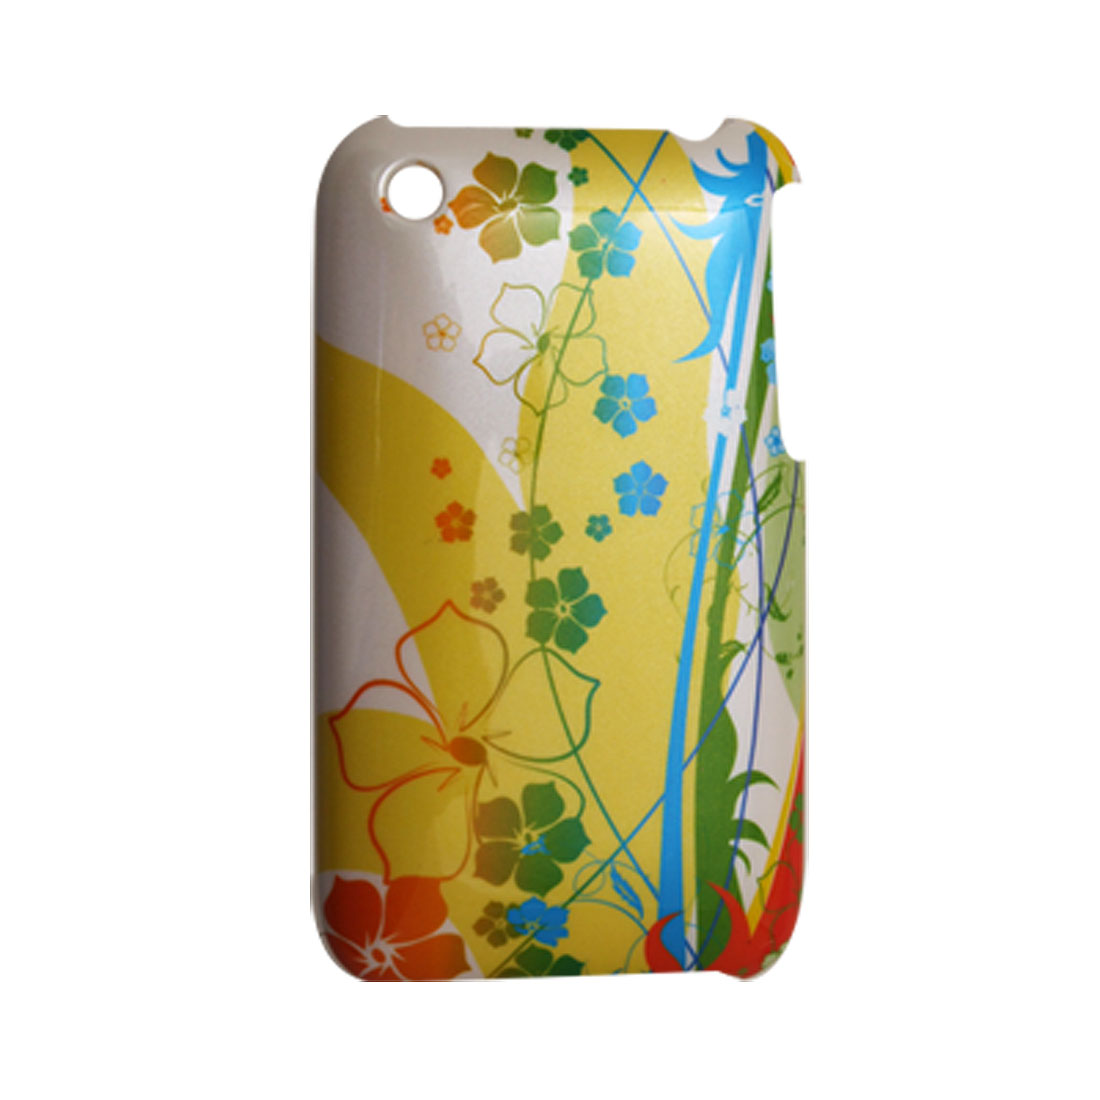 Flower Print Hard Plastic Case Protector for Apple iPhone 3G